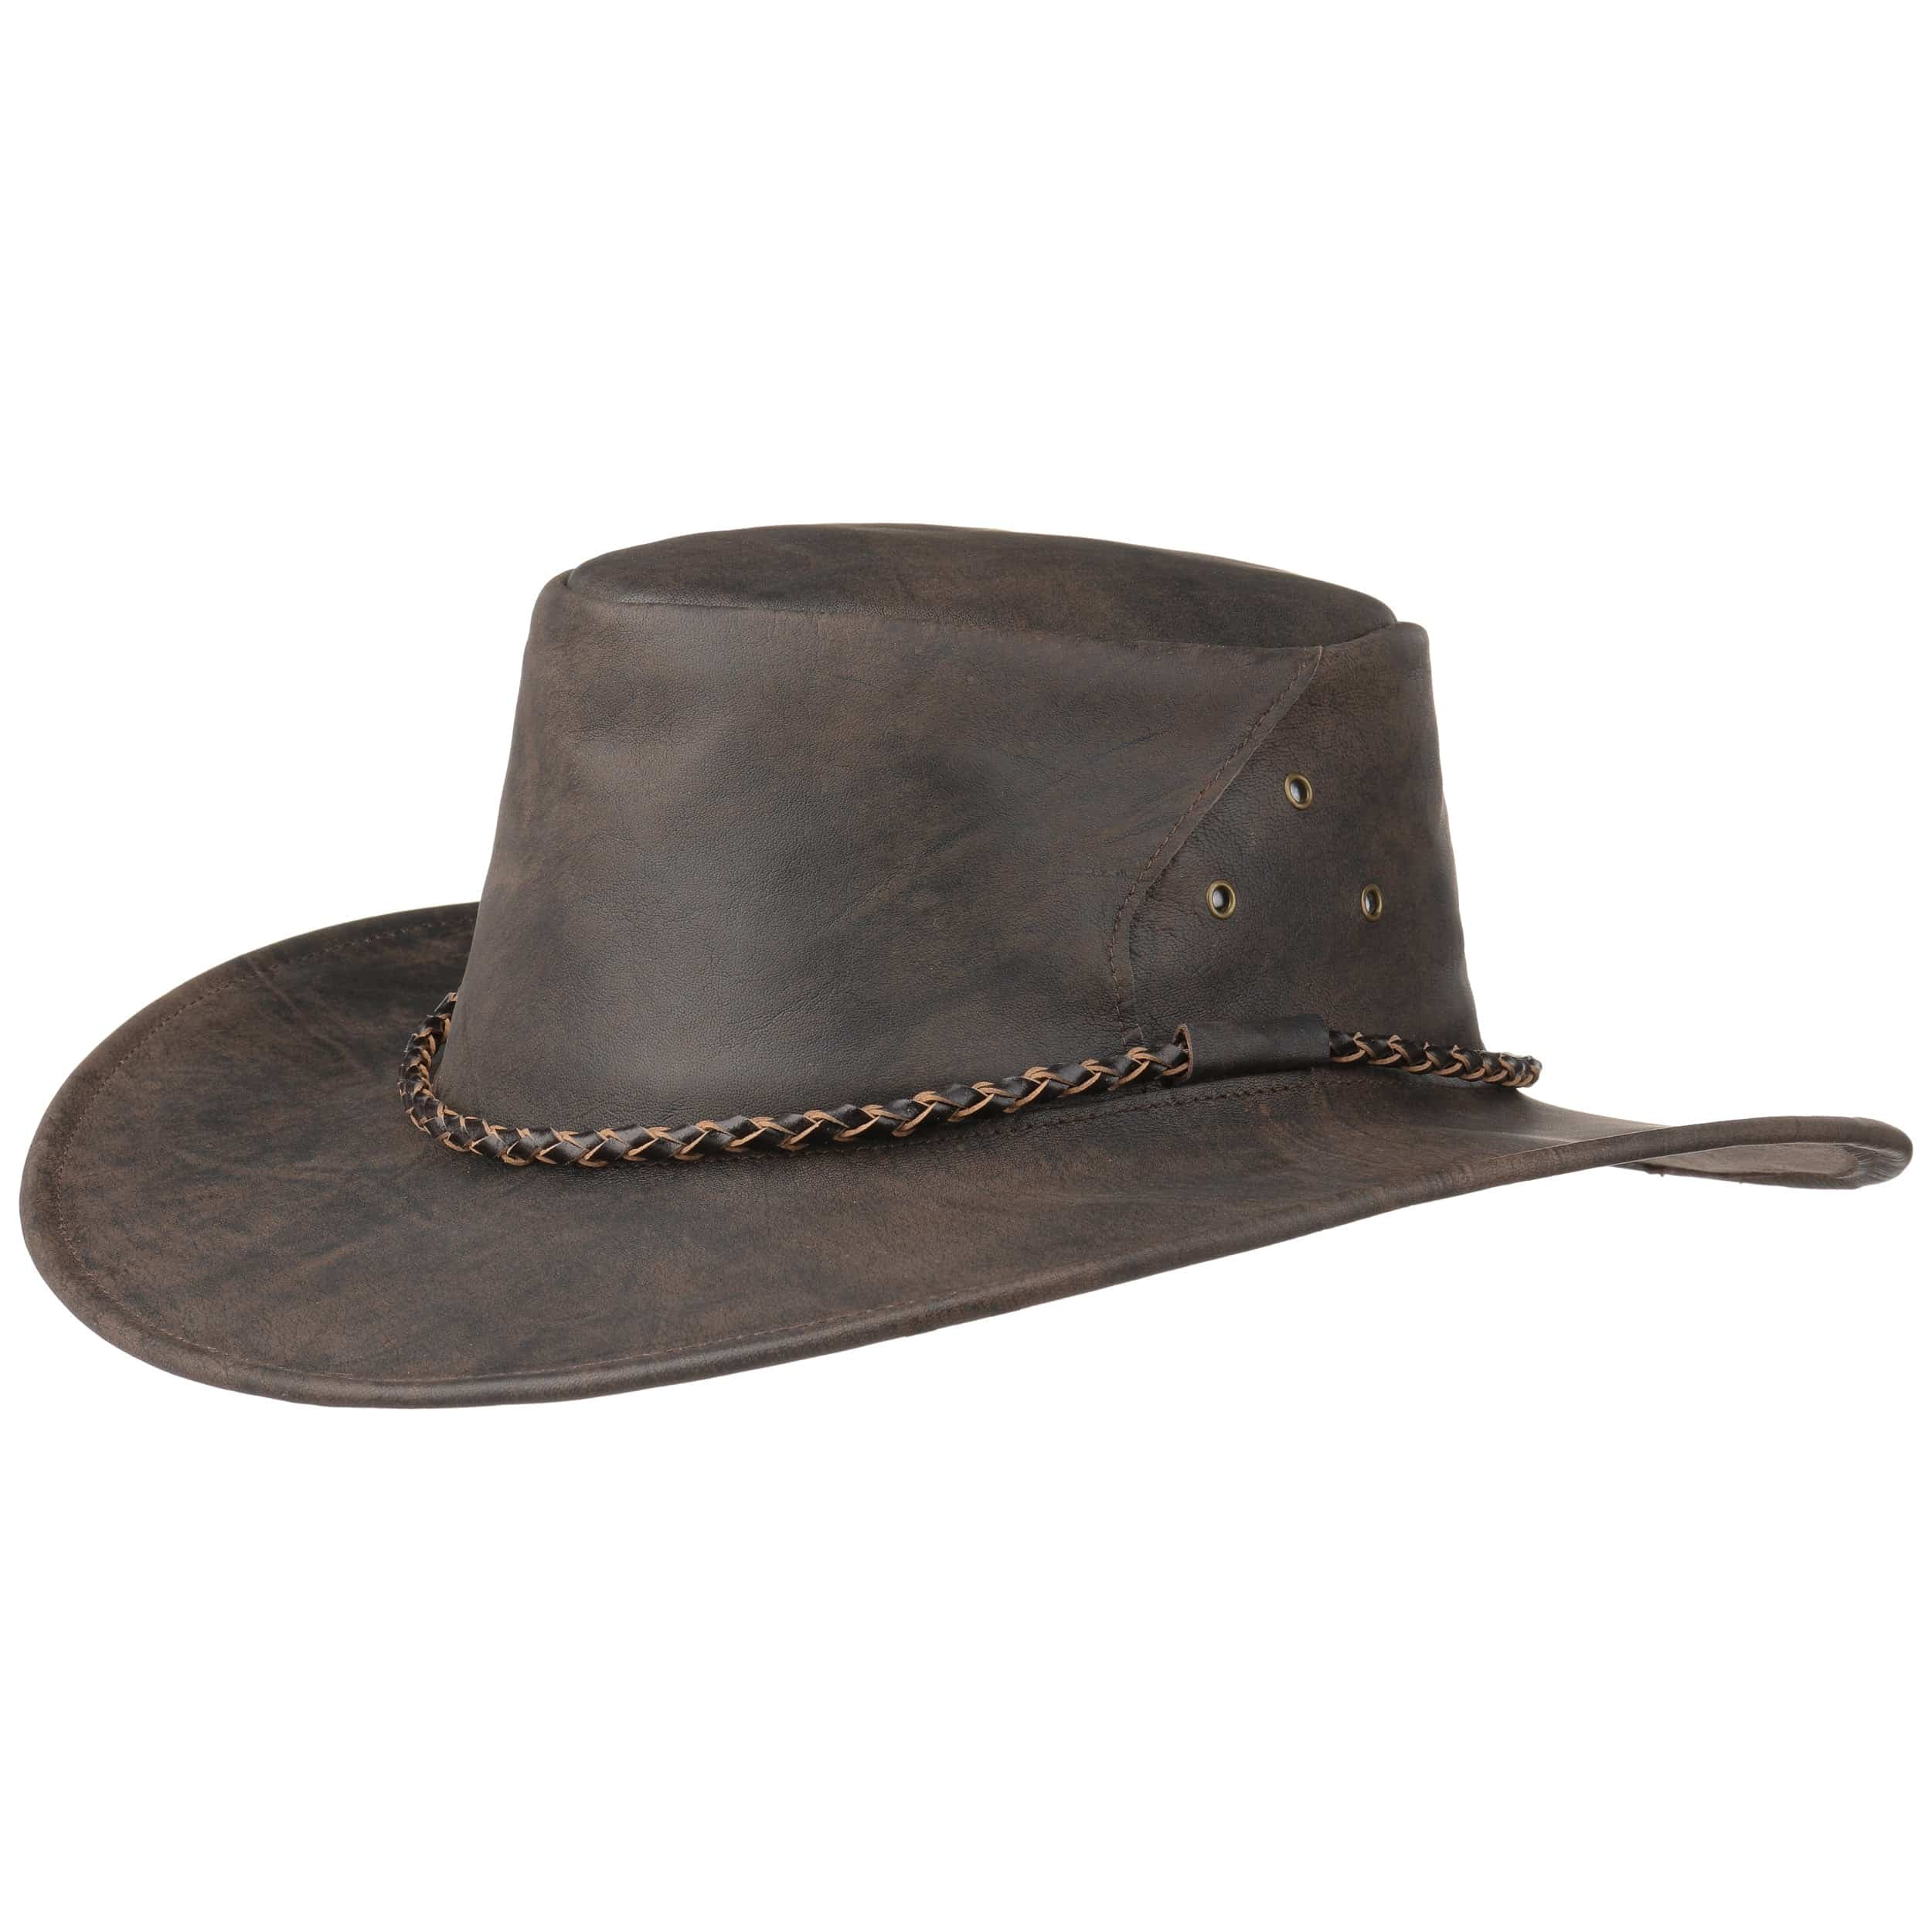 095cfd86d15 ... Narrabeen Leather Hat by Kakadu Traders - brown-mottled 6